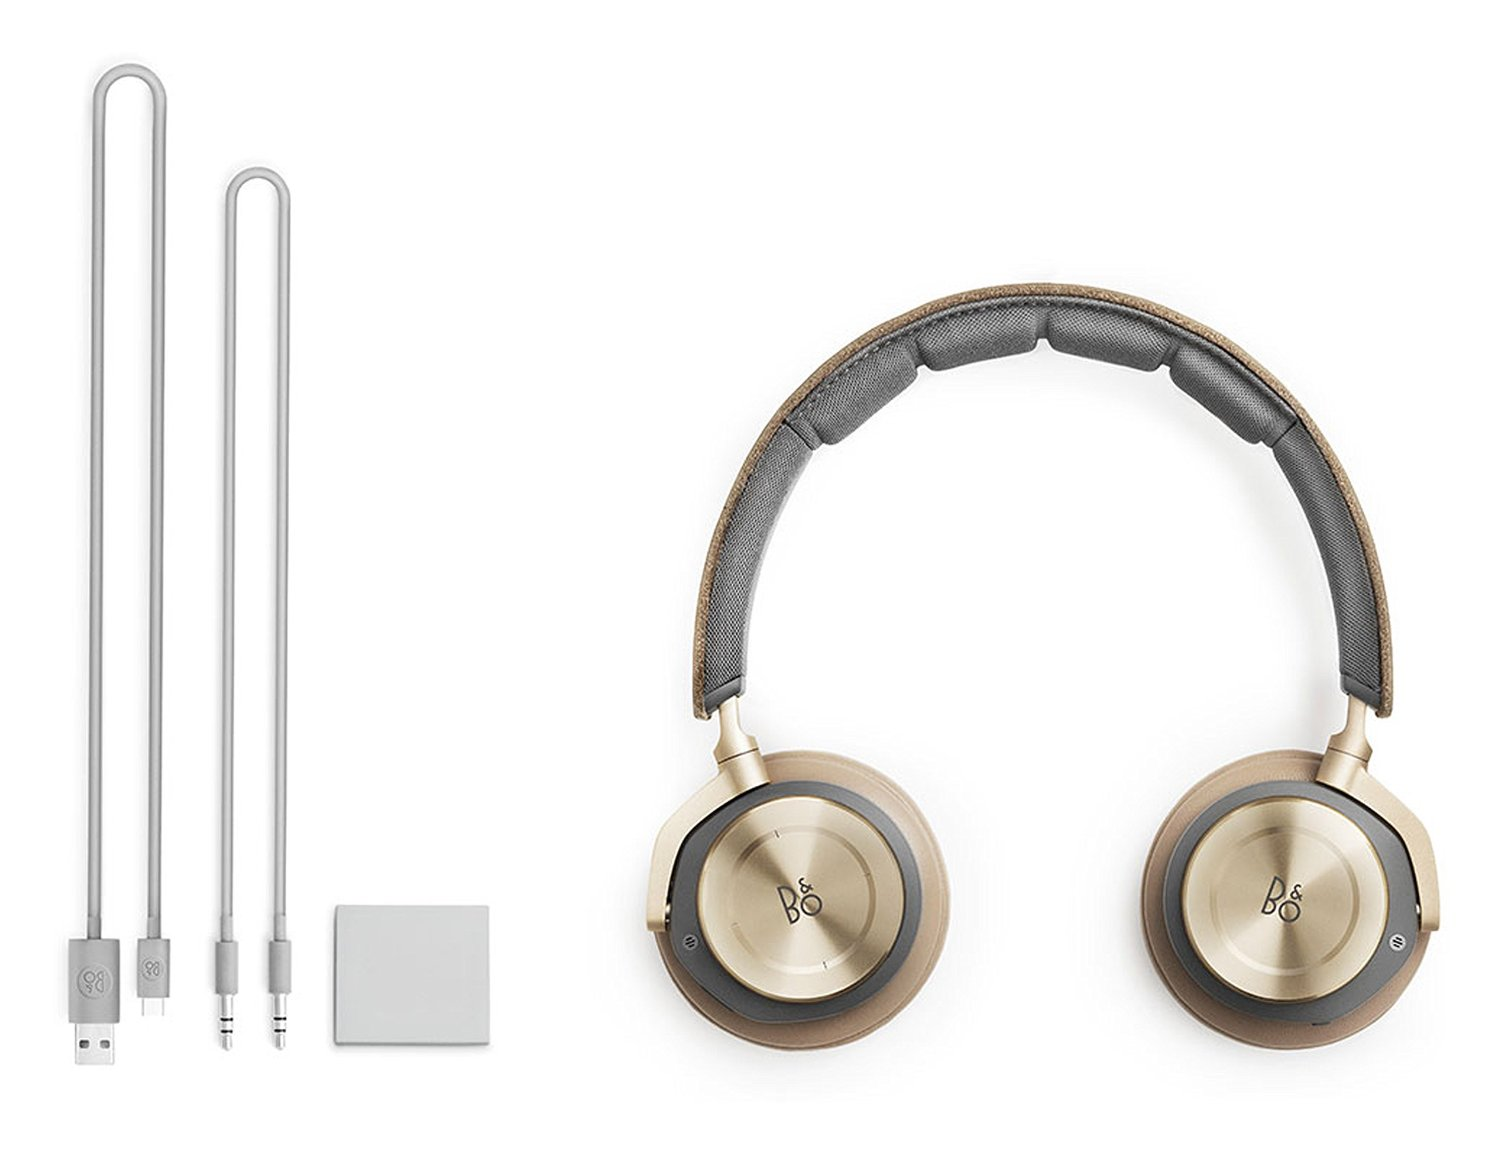 BEOPLAY H8 Headphone Review